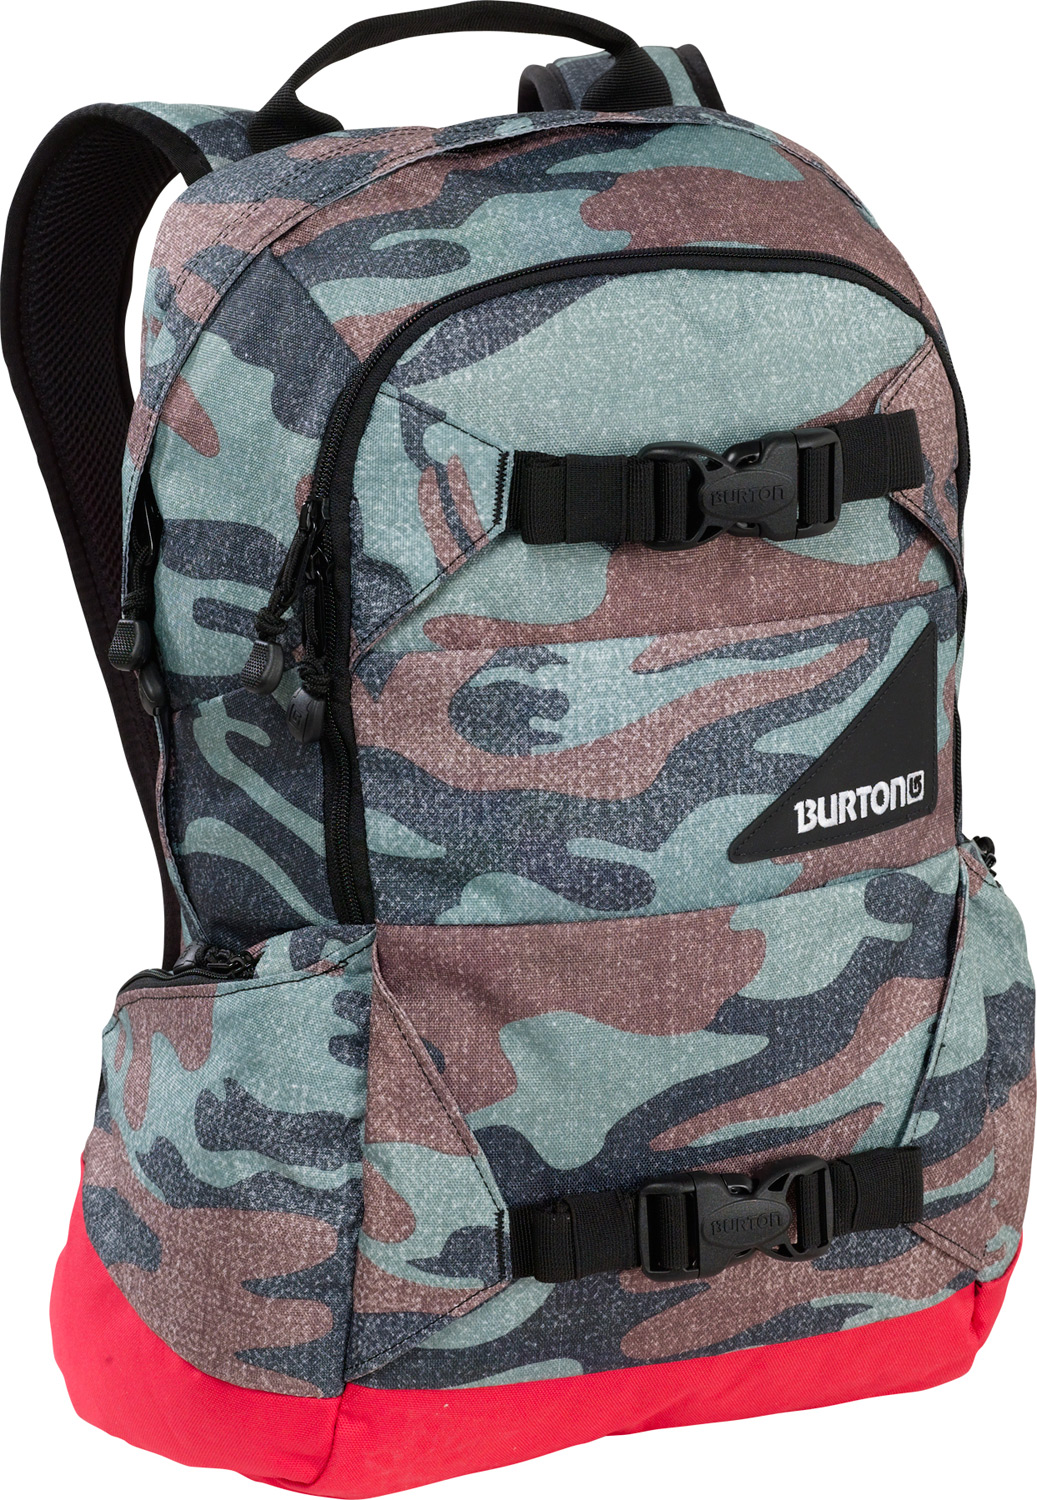 Camp and Hike Versatile, dependable, and durable, ready for any on or off-snow adventure.Key Features of the Burton Day Hiker 20L Backpack: Fabrication: 420D High-Density Nylon / 600D Polyester Cush Ergonomic Shoulder Harness and Ergonomic Back Panel Vertical Board Carry Easy Access Internal Shovel Storage Pocket Padded Laptop Compartment [20L Only] [12 in. x 10.5 in. x 1.5 in.] Fleece-Lined Goggle / Sound Pocket Hydration Compatible Waist Strap Dimensions: [19 x 11 x 8 in.] - $44.95